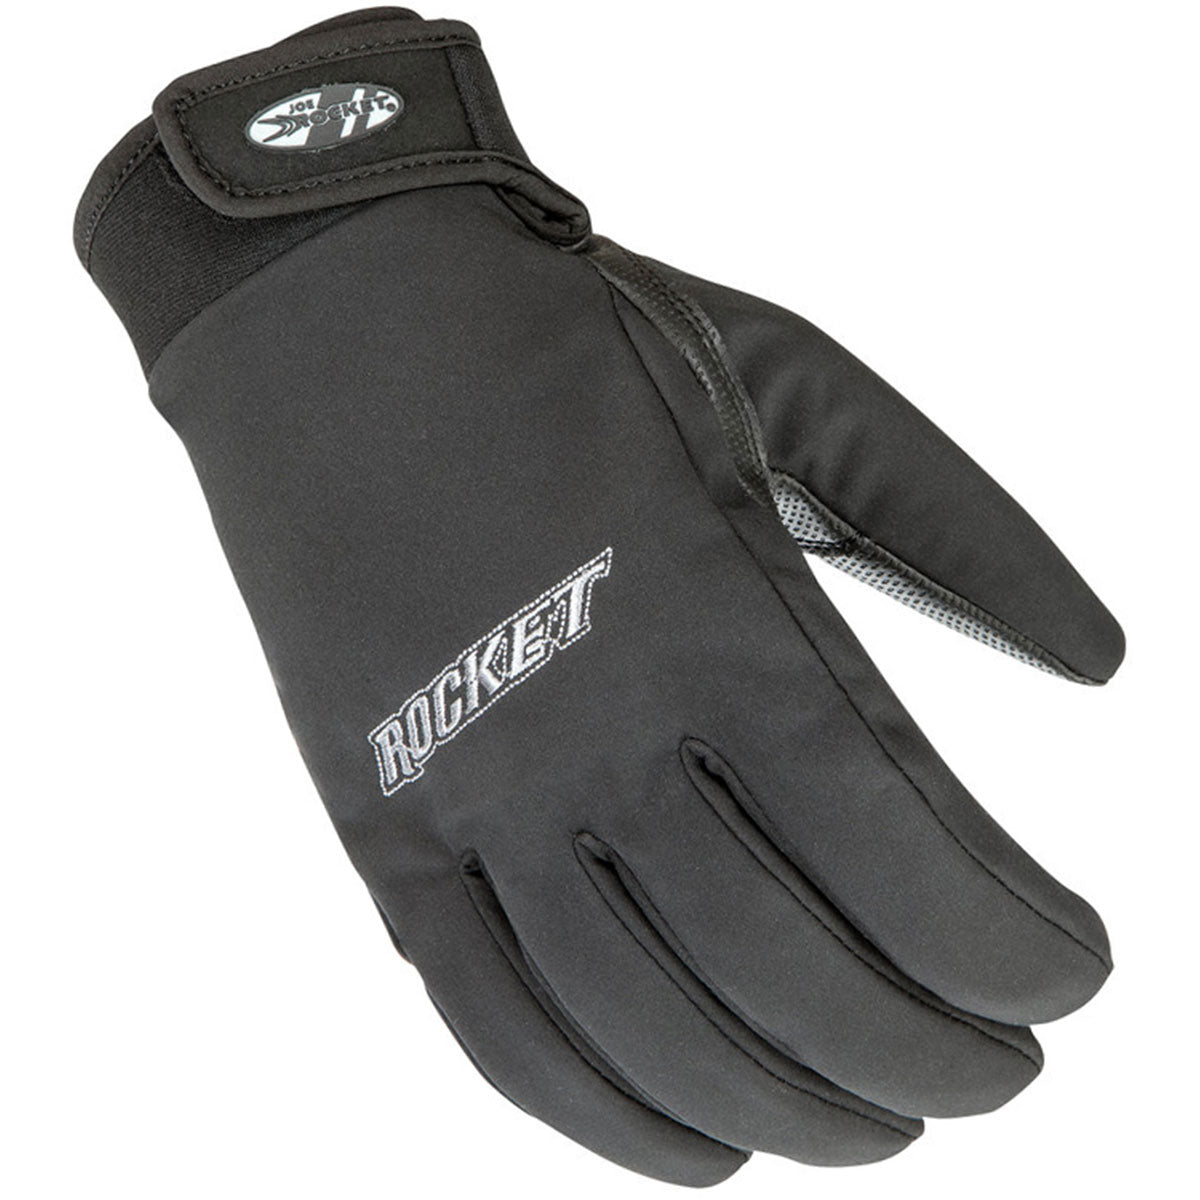 Joe Rocket Crew Pro Men's Street Gloves-1956